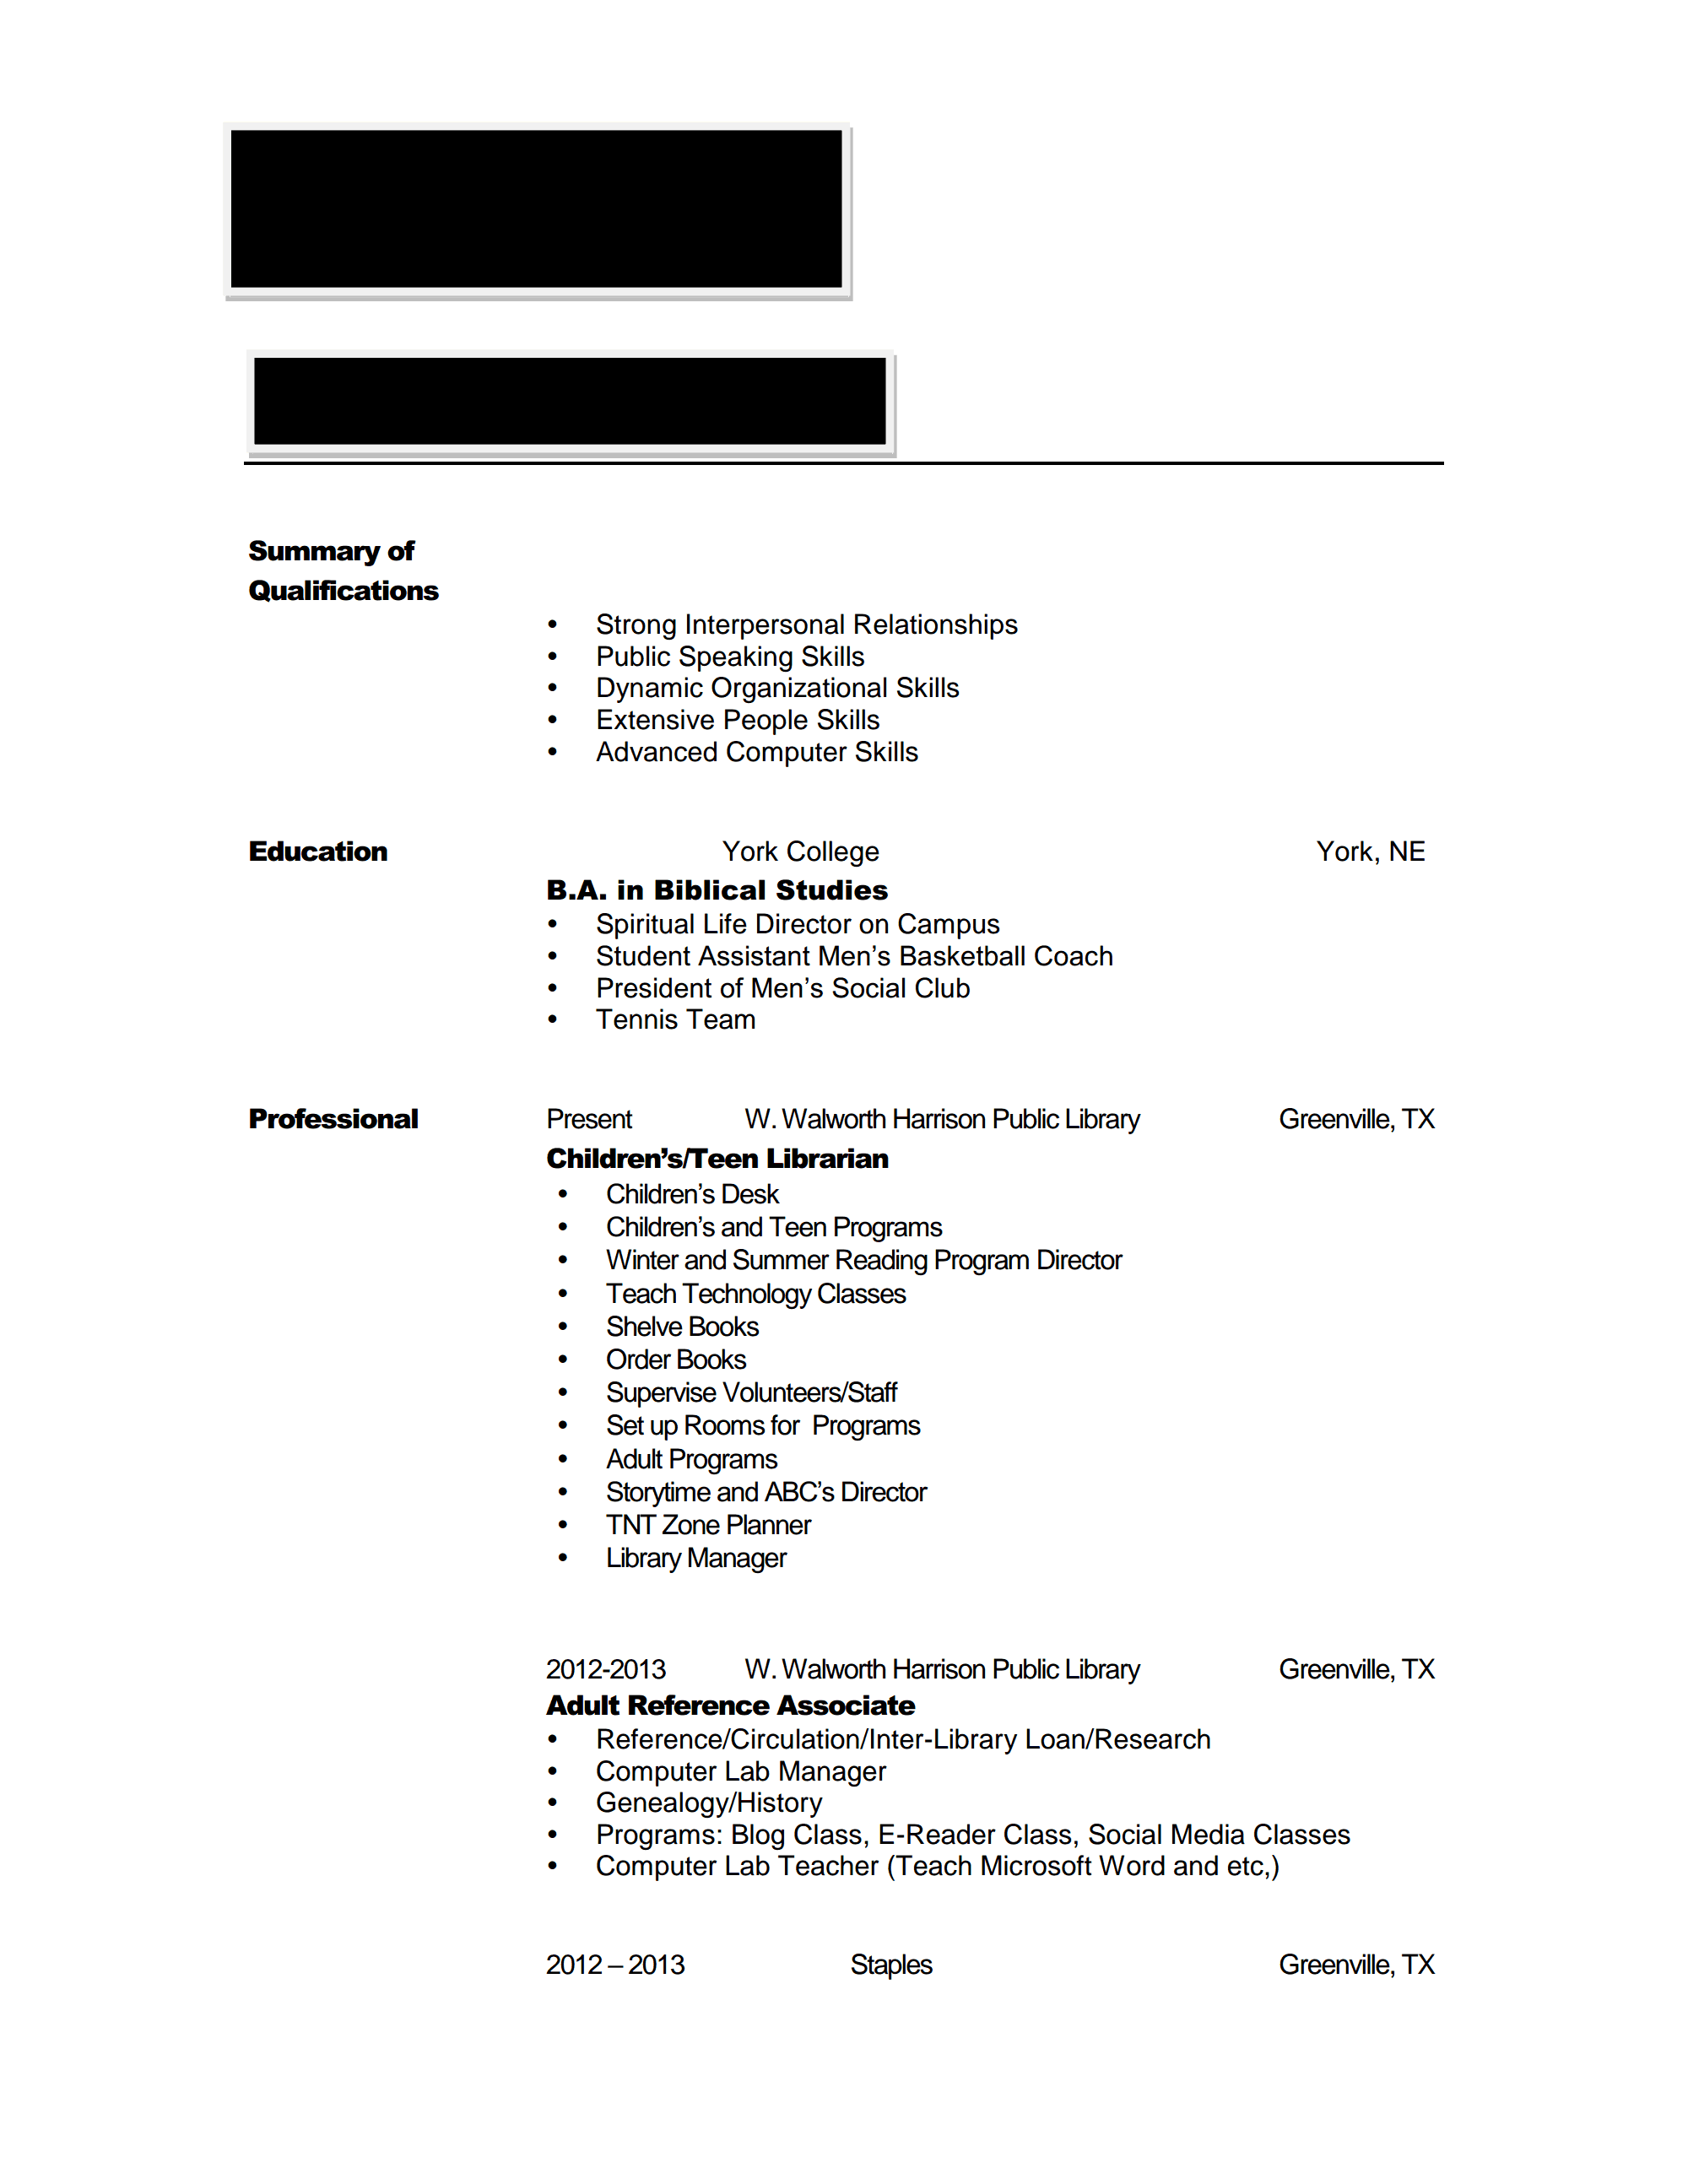 reviewing resumes for hiring